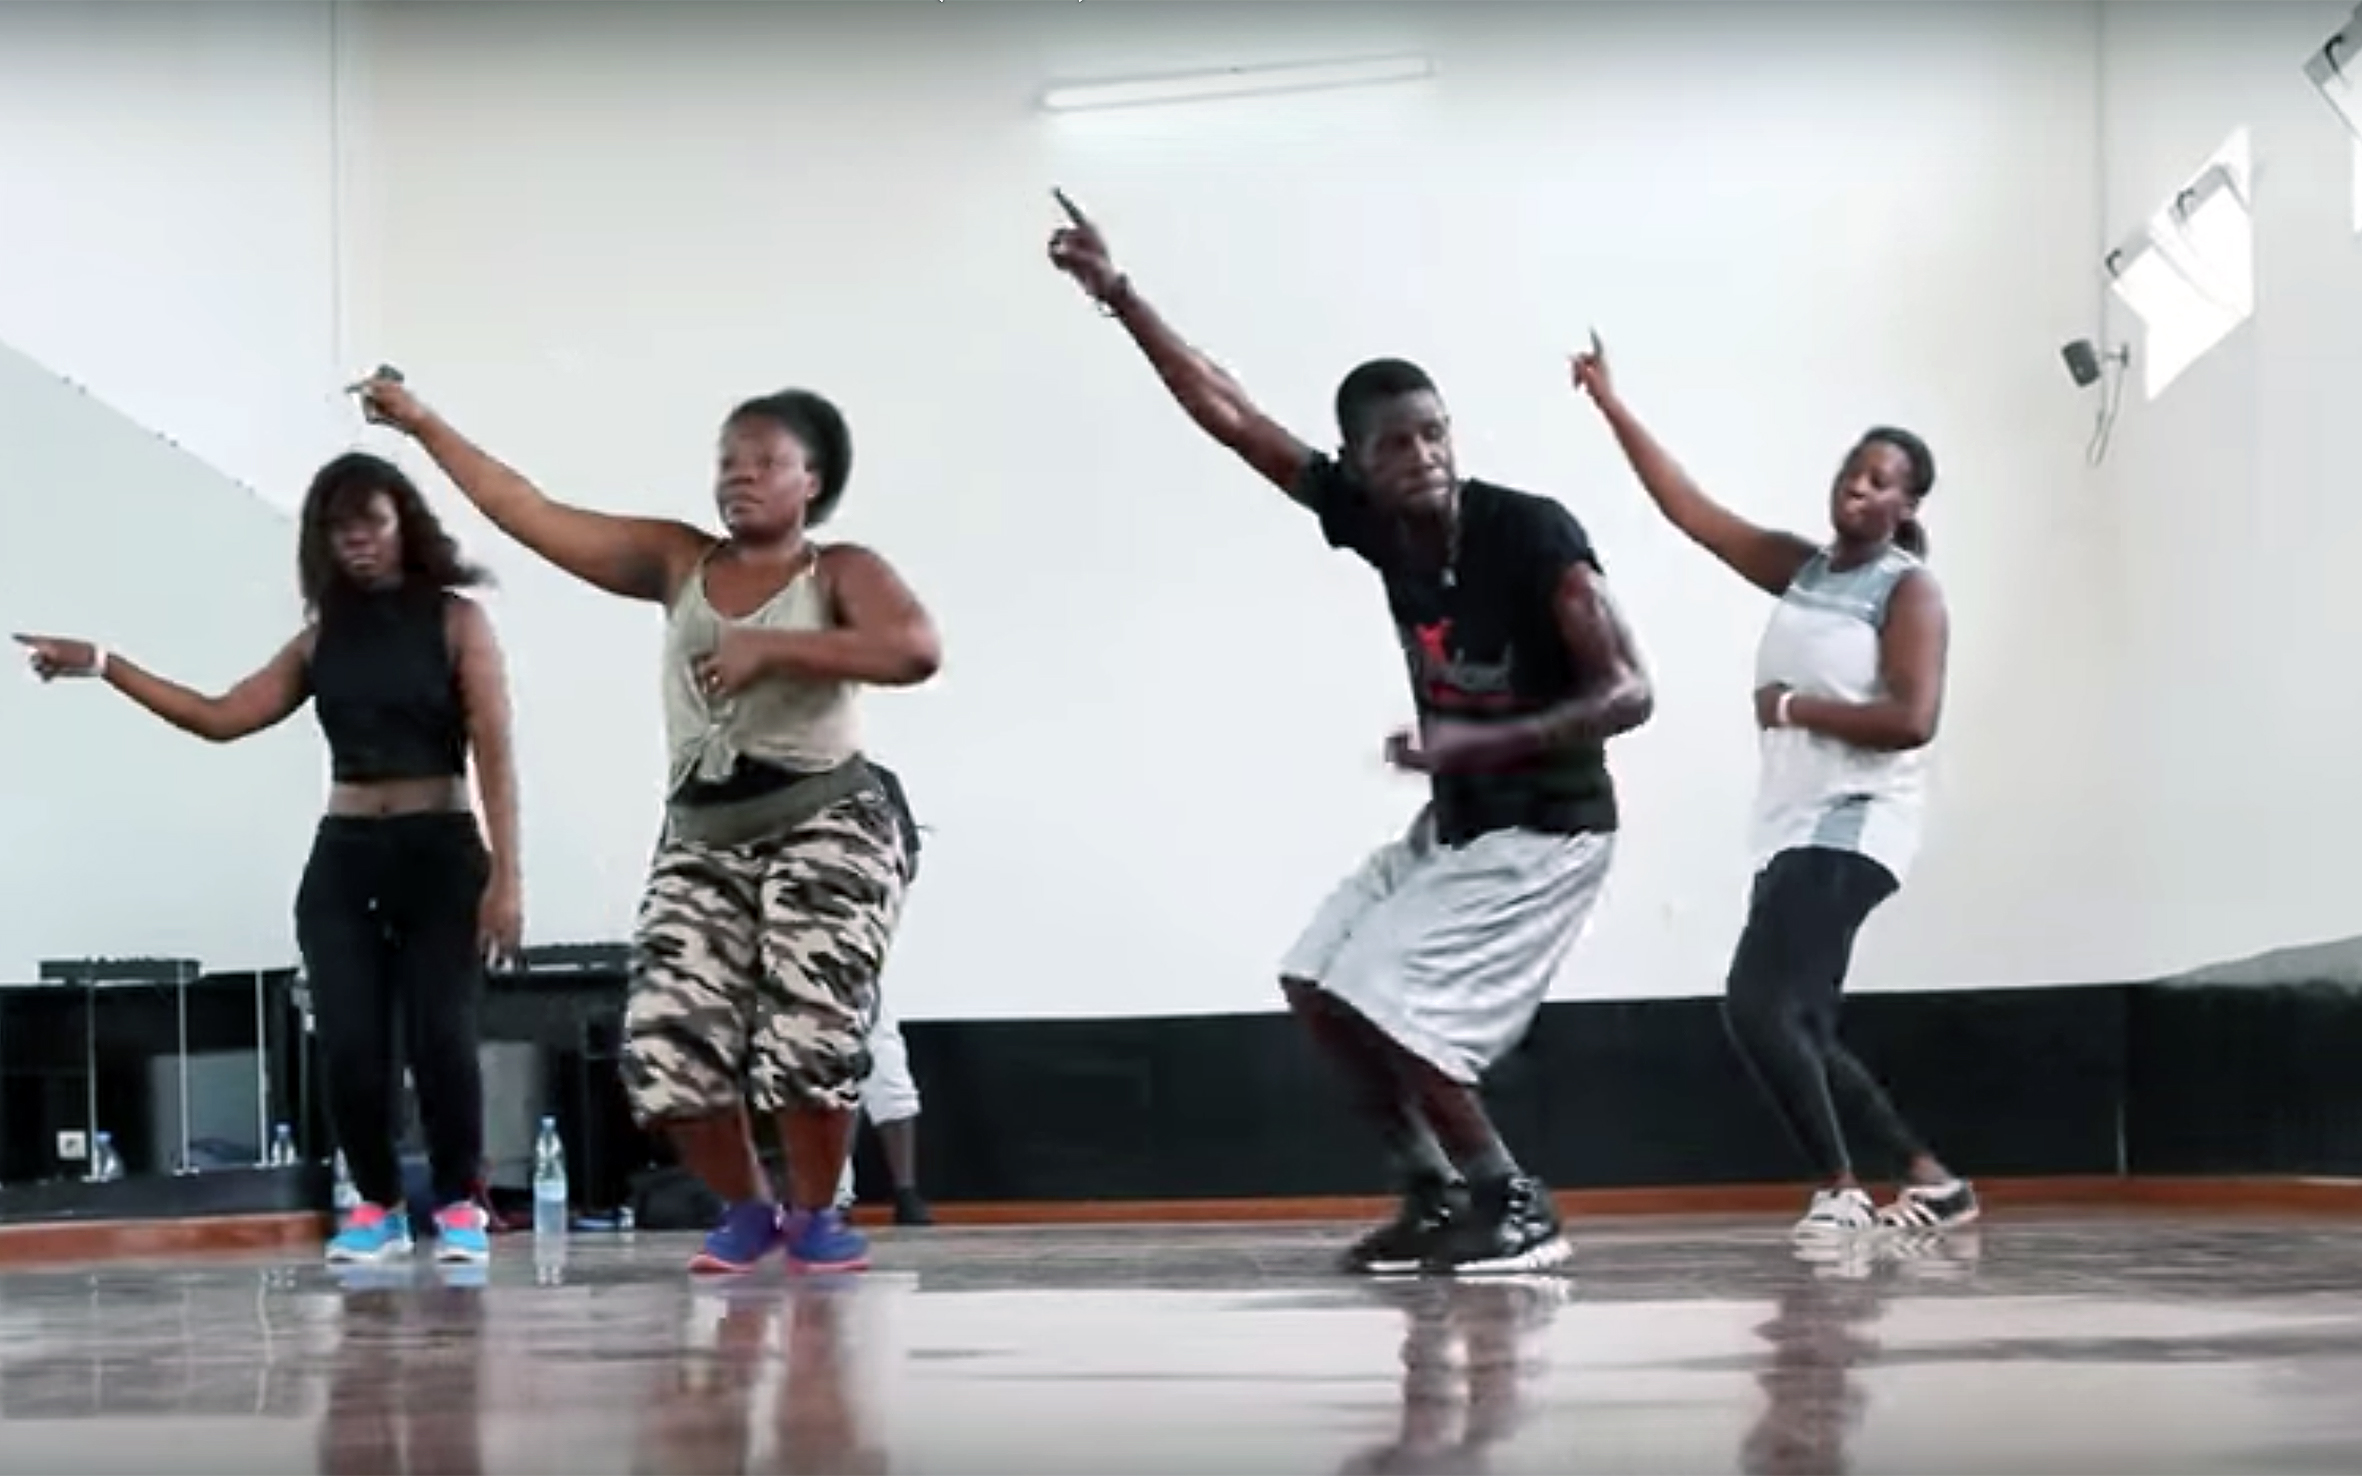 497.Kool Kache / Togo - Kool Kache is an afro urban dance born in Togo.